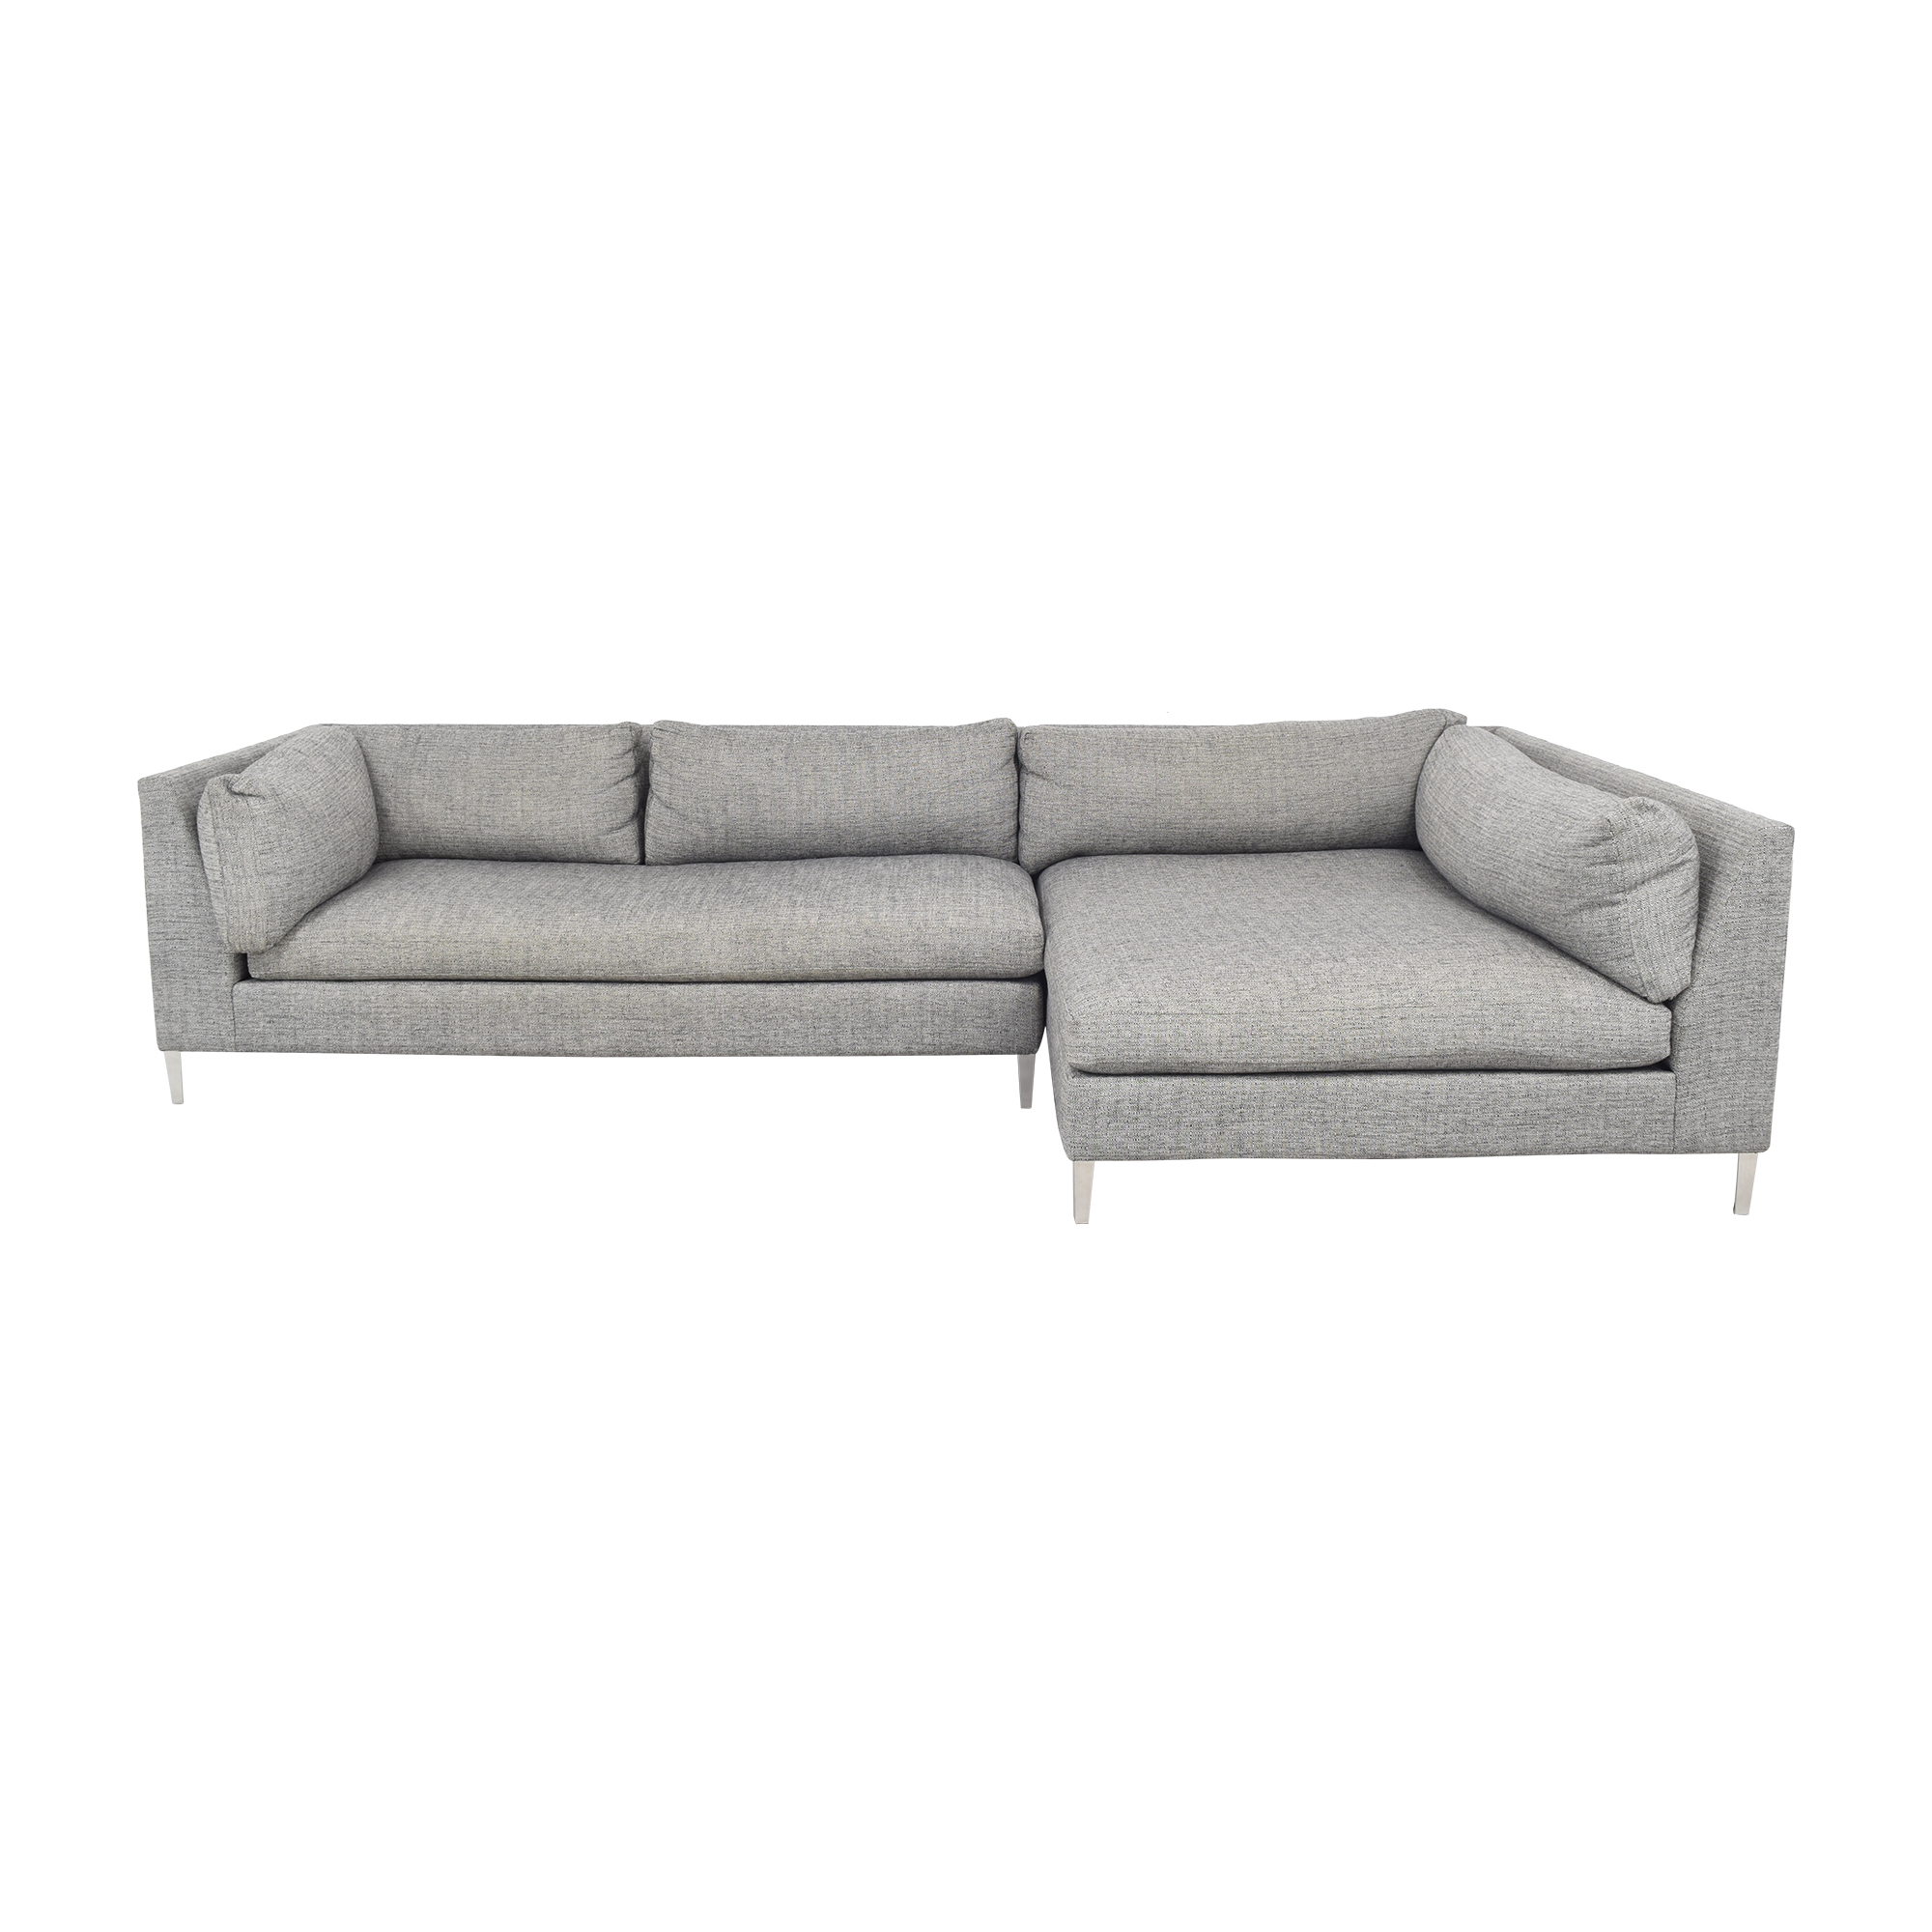 CB2 Decker Two- Piece Sectional Sofa / Sofas